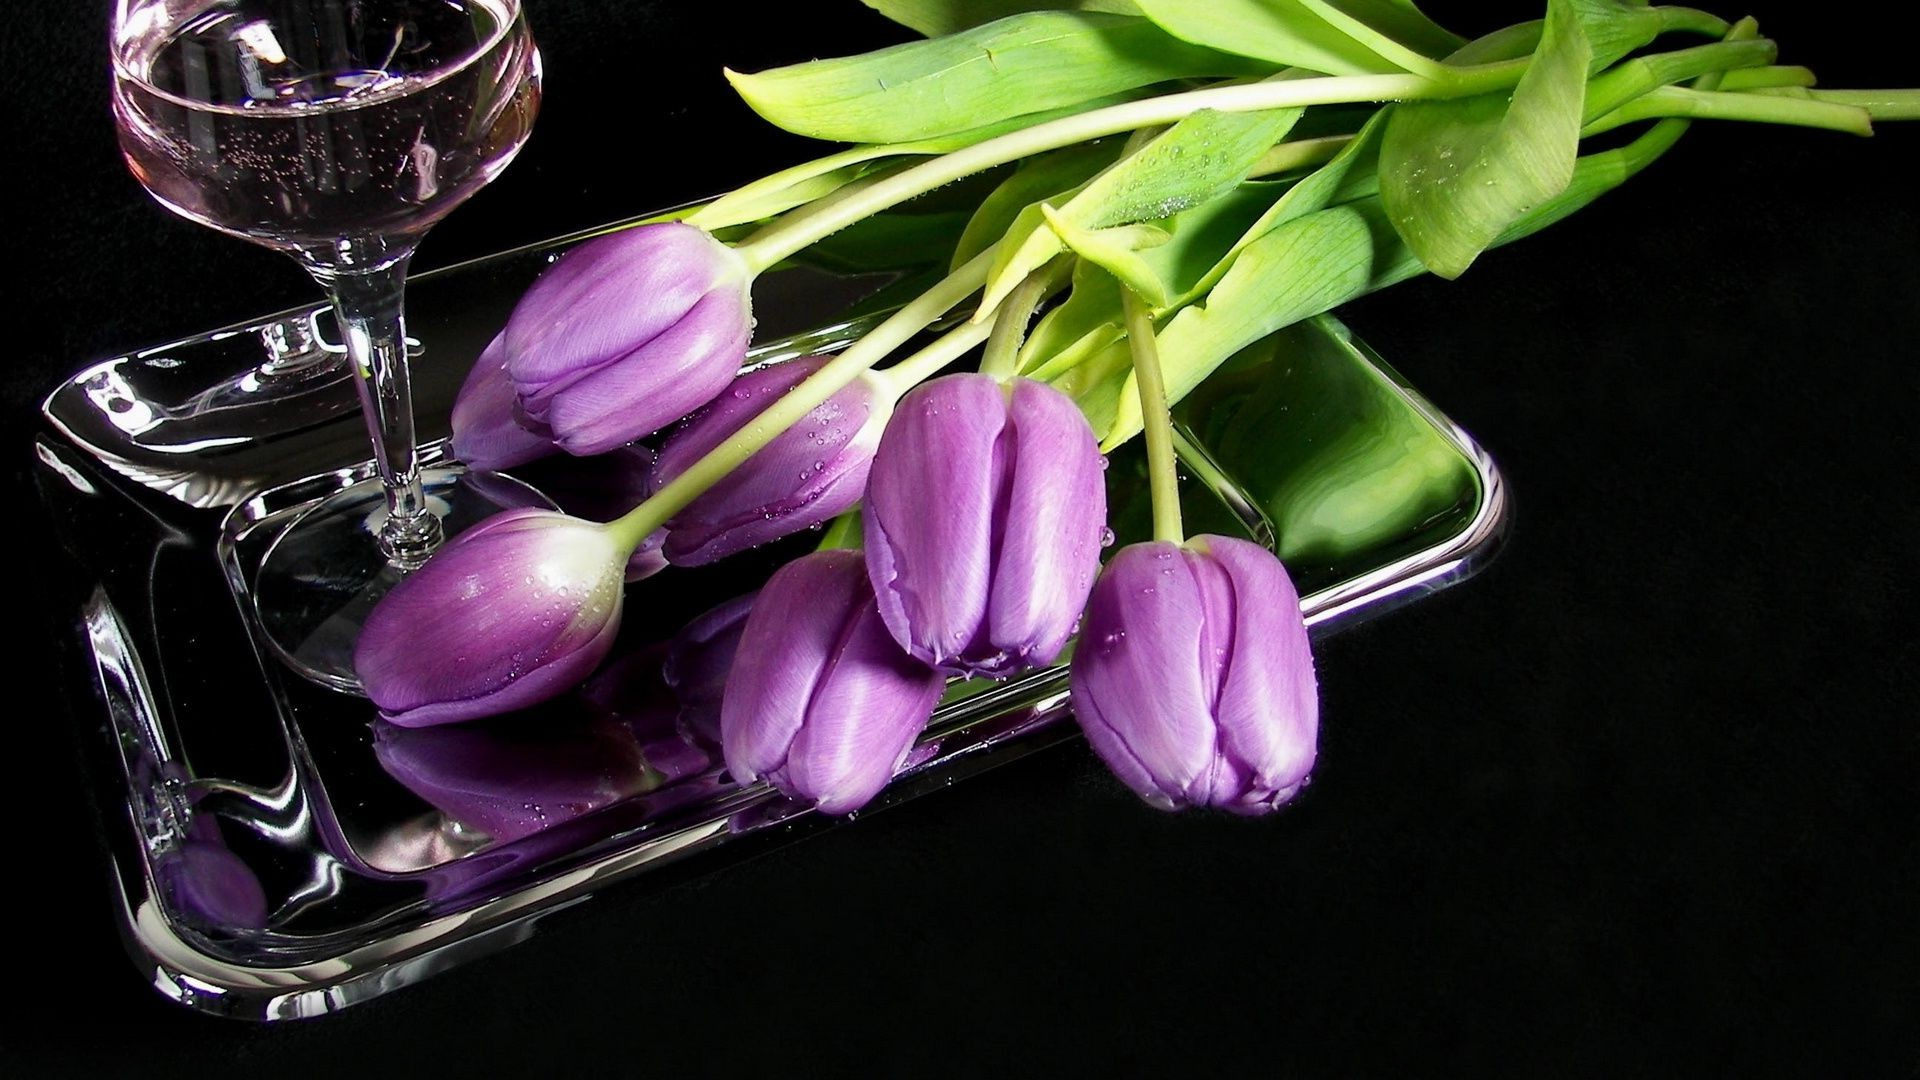 the glass tray tulips Flowers wine